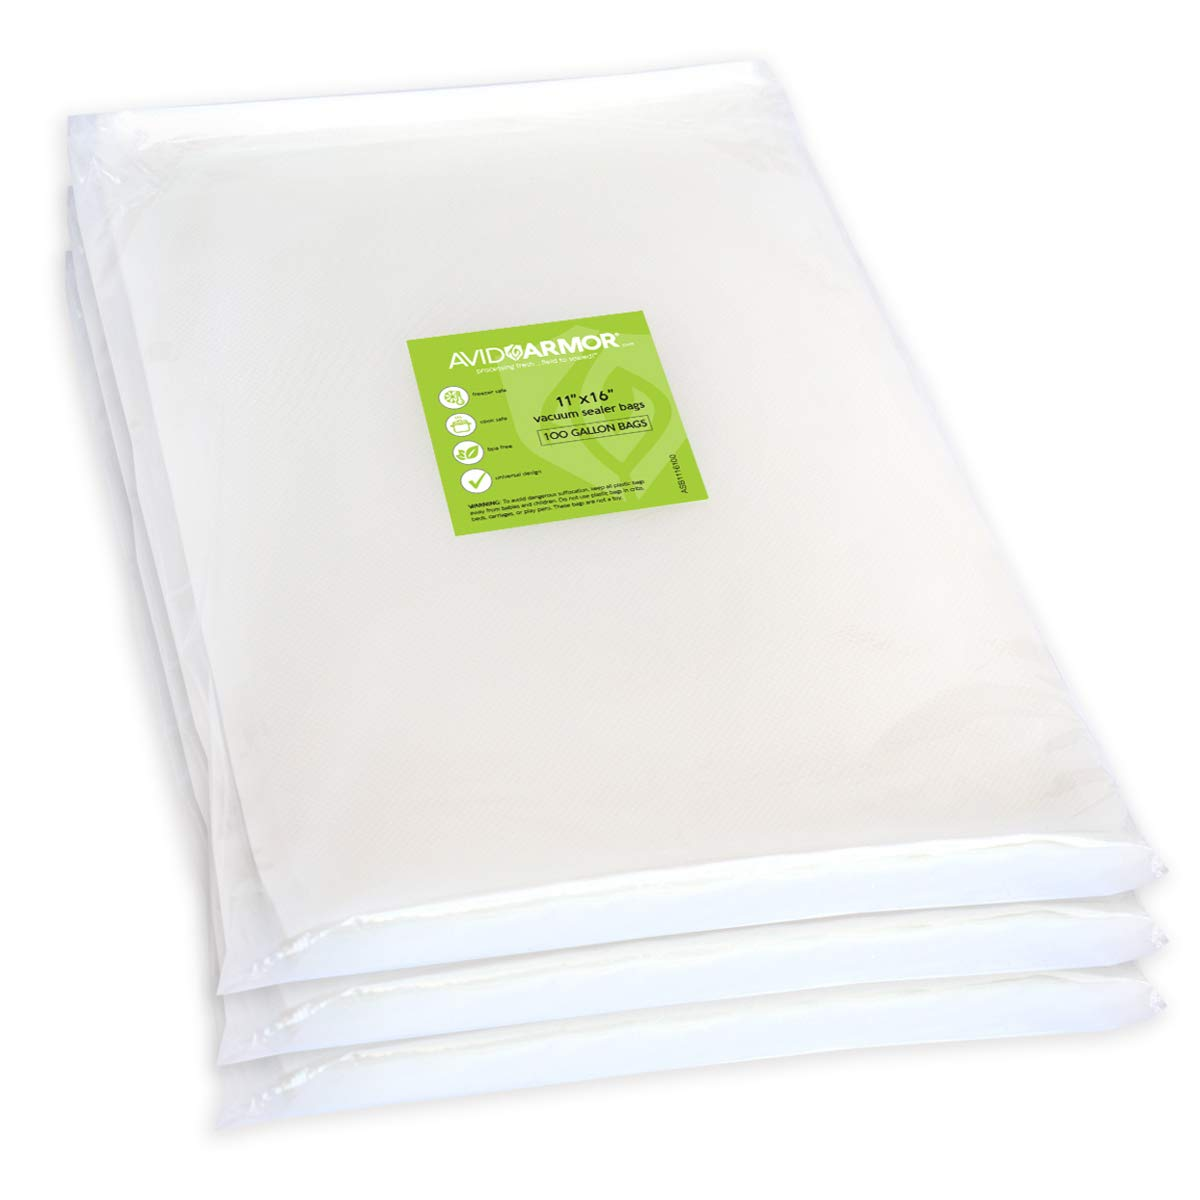 300 Gallon Vacuum Sealer Bags - for Food Saver, Seal a Meal Vac Sealers, 11'' x 16'' Size, BPA Free, Heavy Duty Commercial Grade, Sous Vide Vaccume Safe, Universal Design Precut Storage Bag Avid Armor by Avid Armor